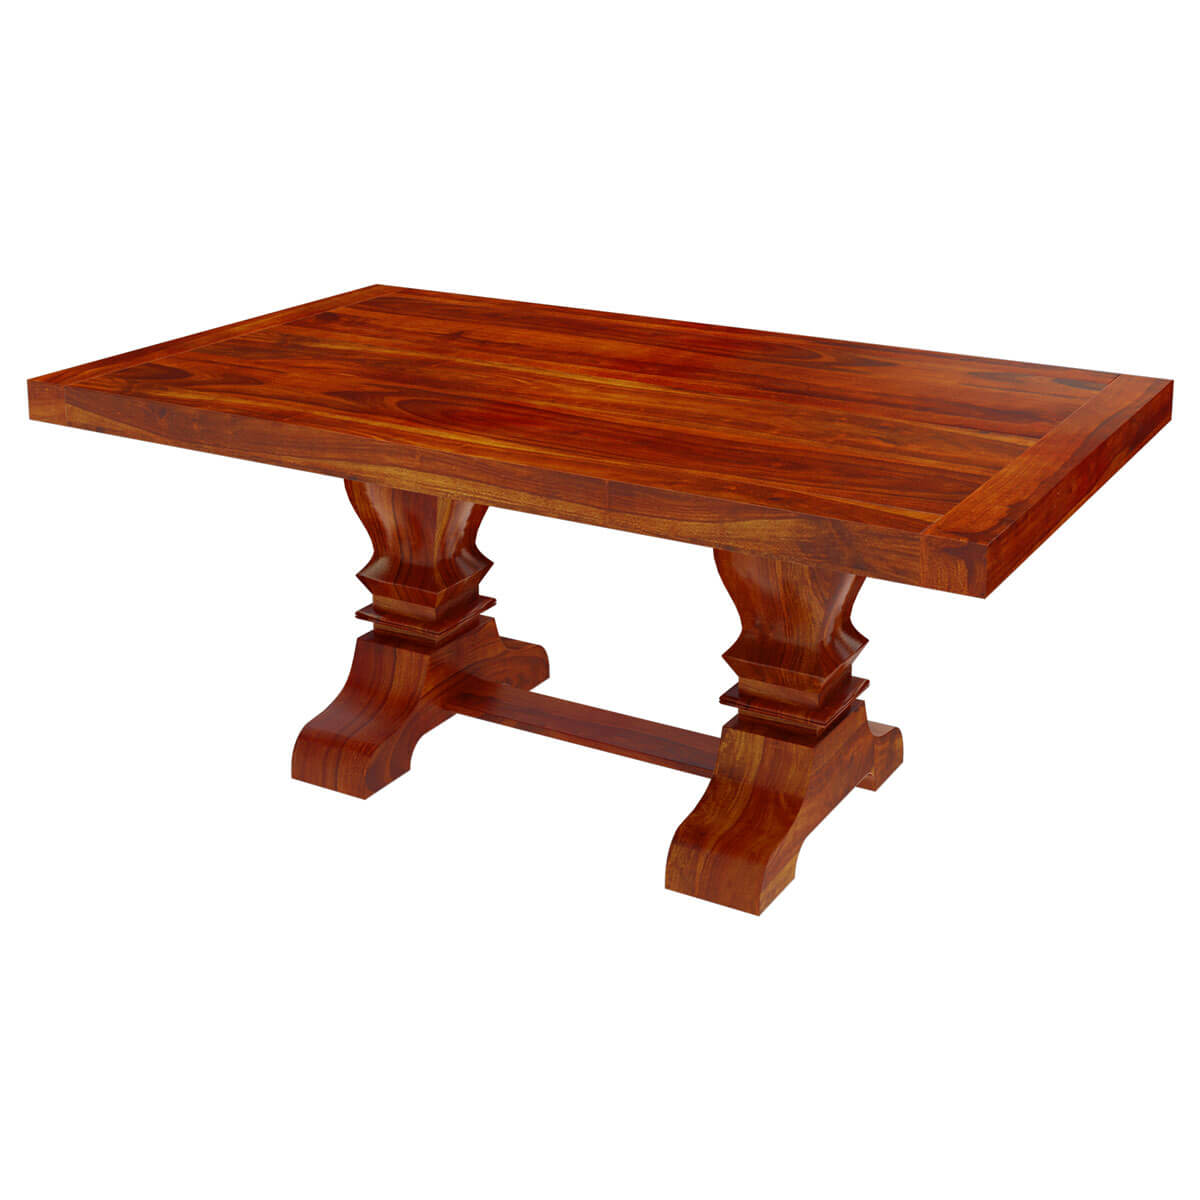 Solid Indian Hardwood Trestle Pedestal Dining Table For 6 People